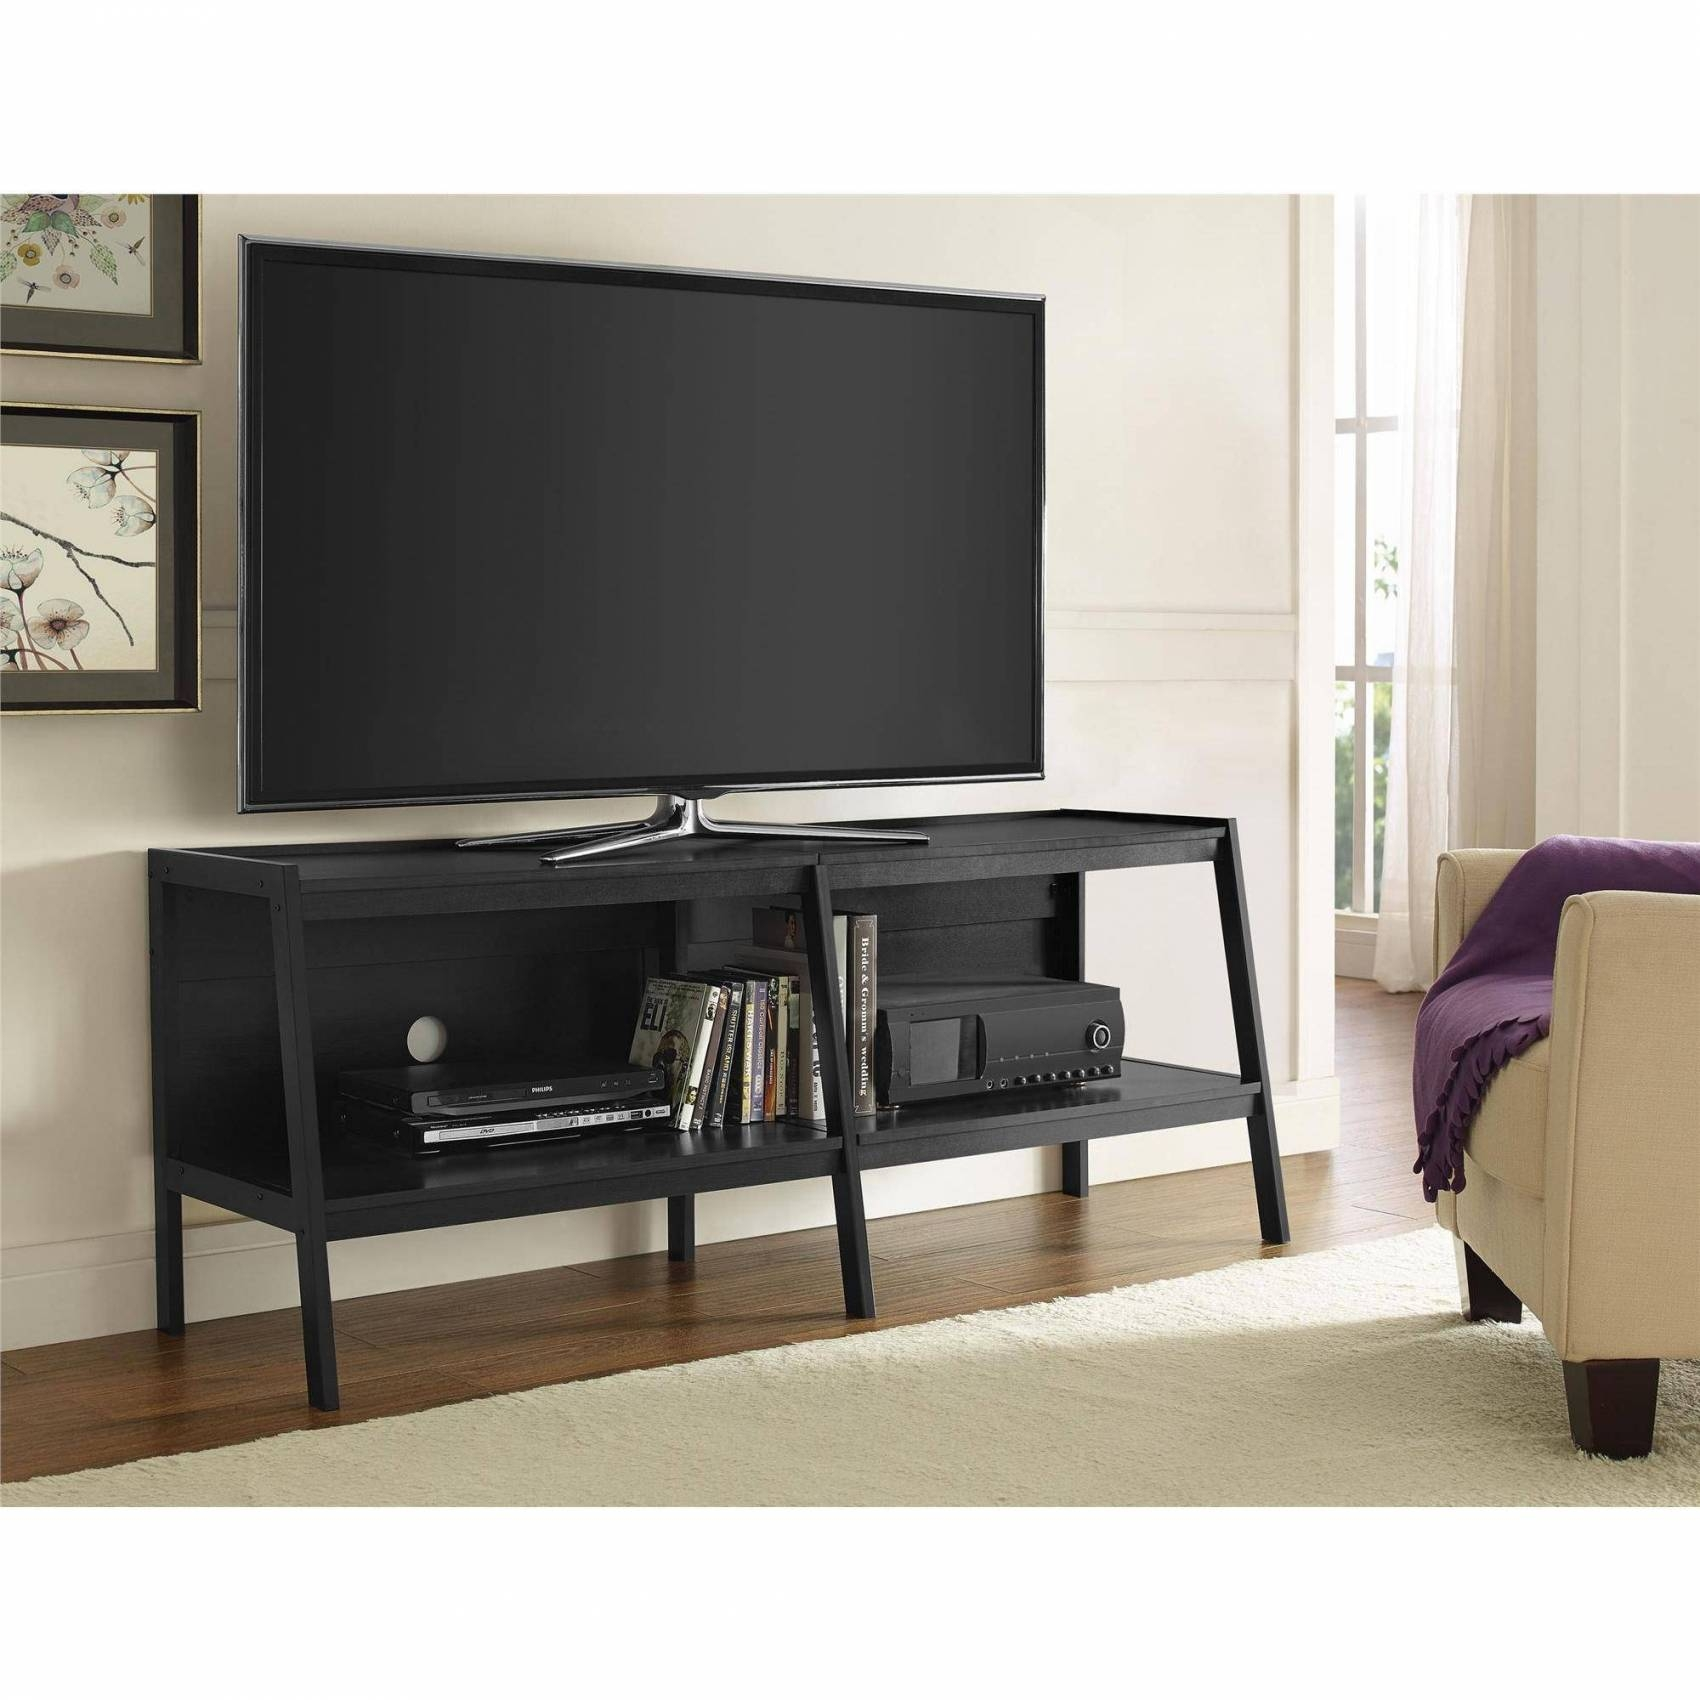 Modern Tv Stands Up To 60 Inches Fresh | Vgmnation pertaining to Modern Tv Stands For 60 Inch Tvs (Image 8 of 15)